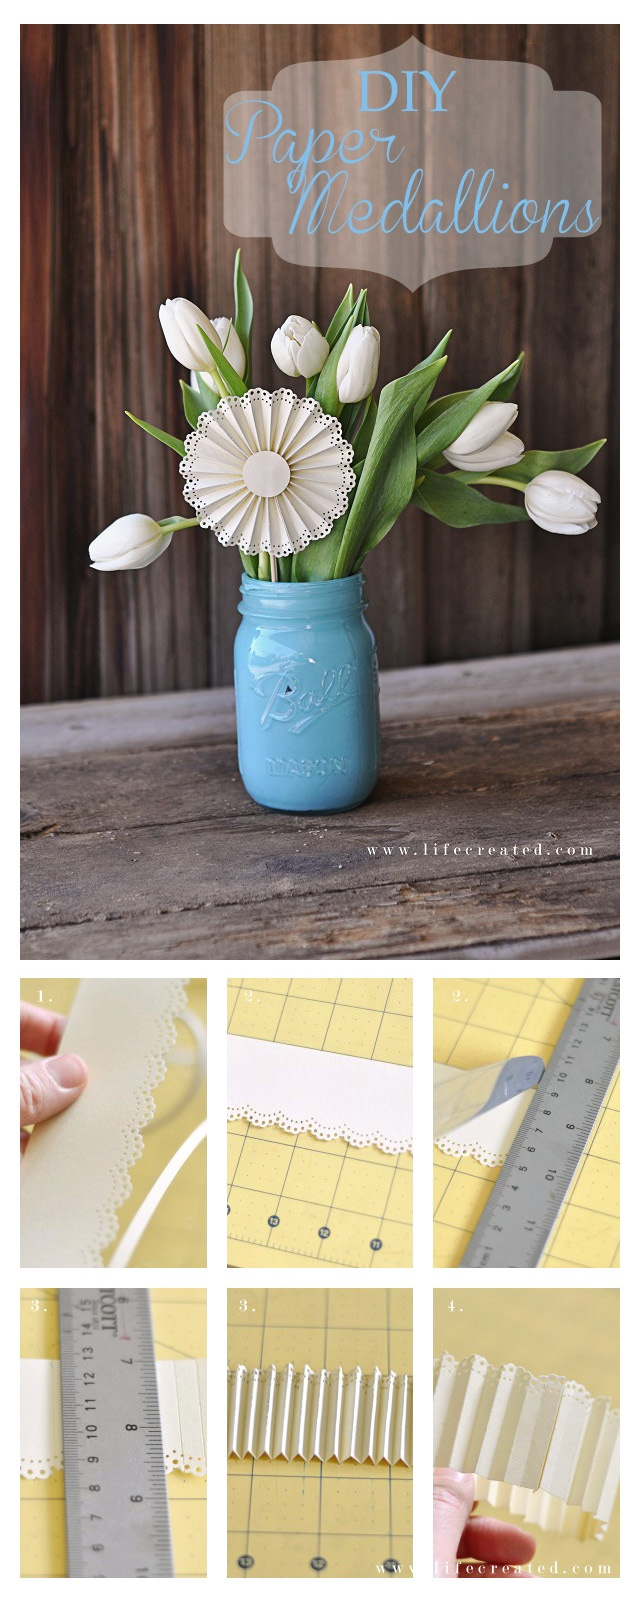 How to make Paper Medallions